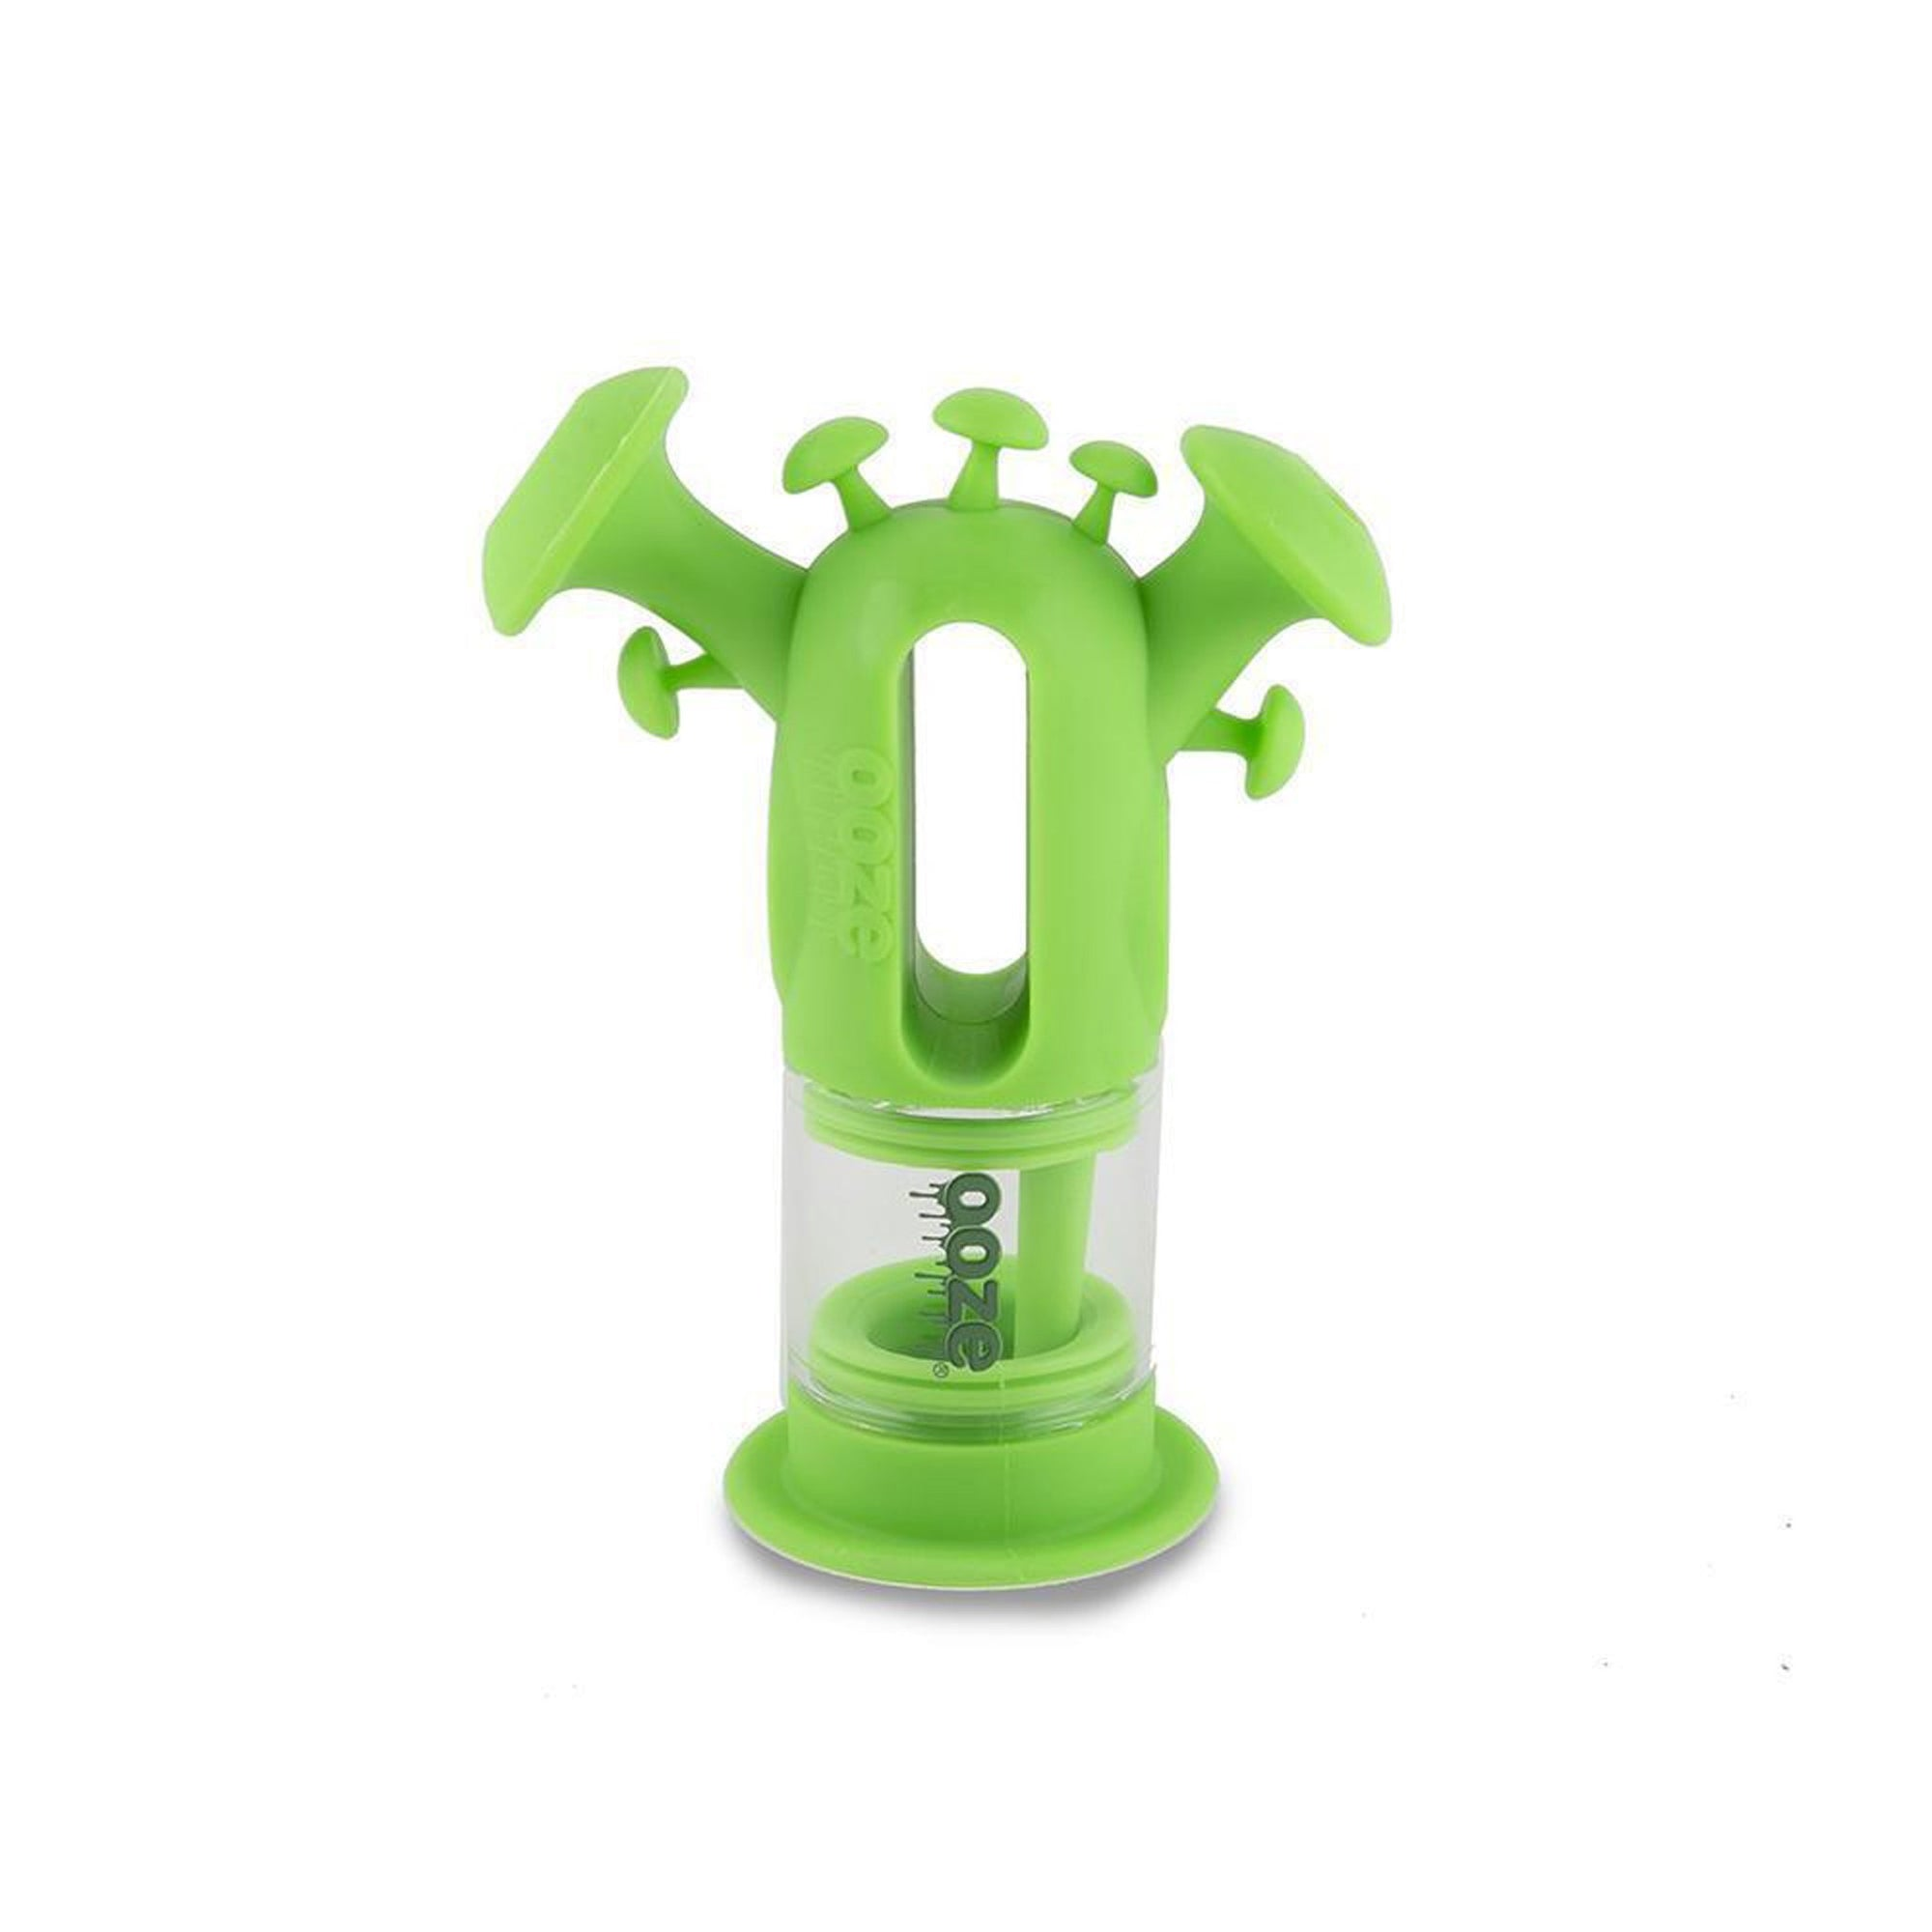 Funky 7.5 inch Ooze Trip green silicone bubbler mushroom shaped accents on top hole in the middle Ooze dripping water logo